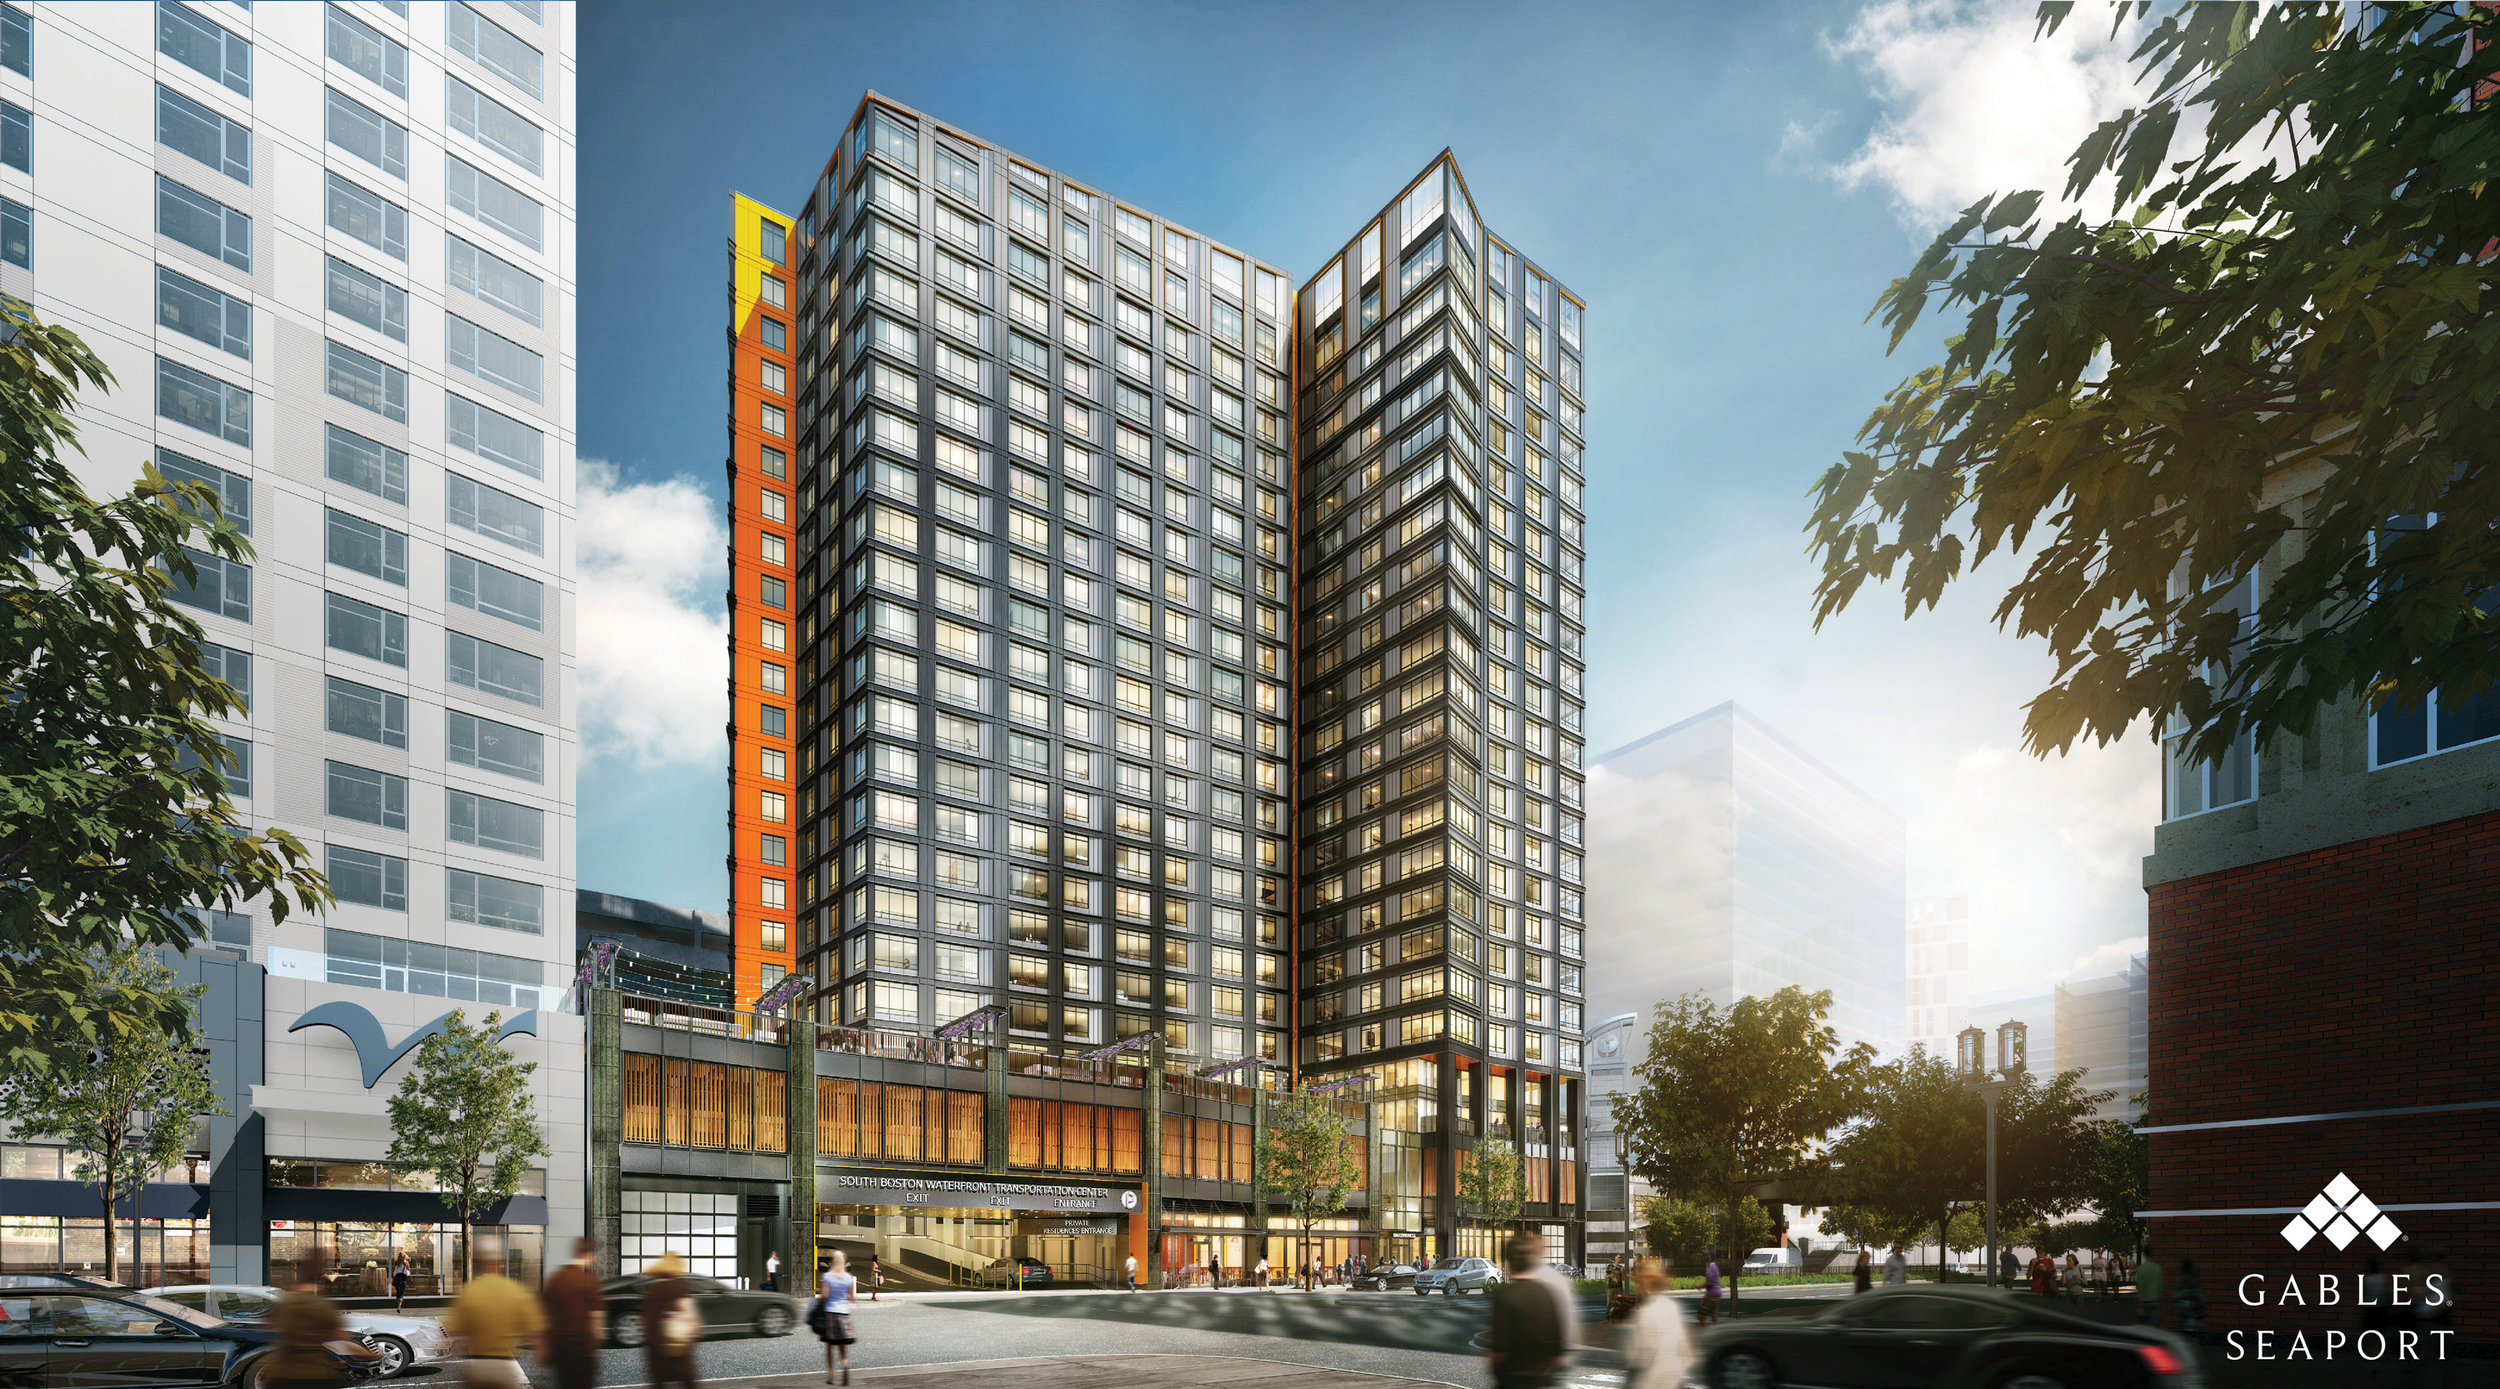 Gable Seaport (Rendering by CBT Architects)